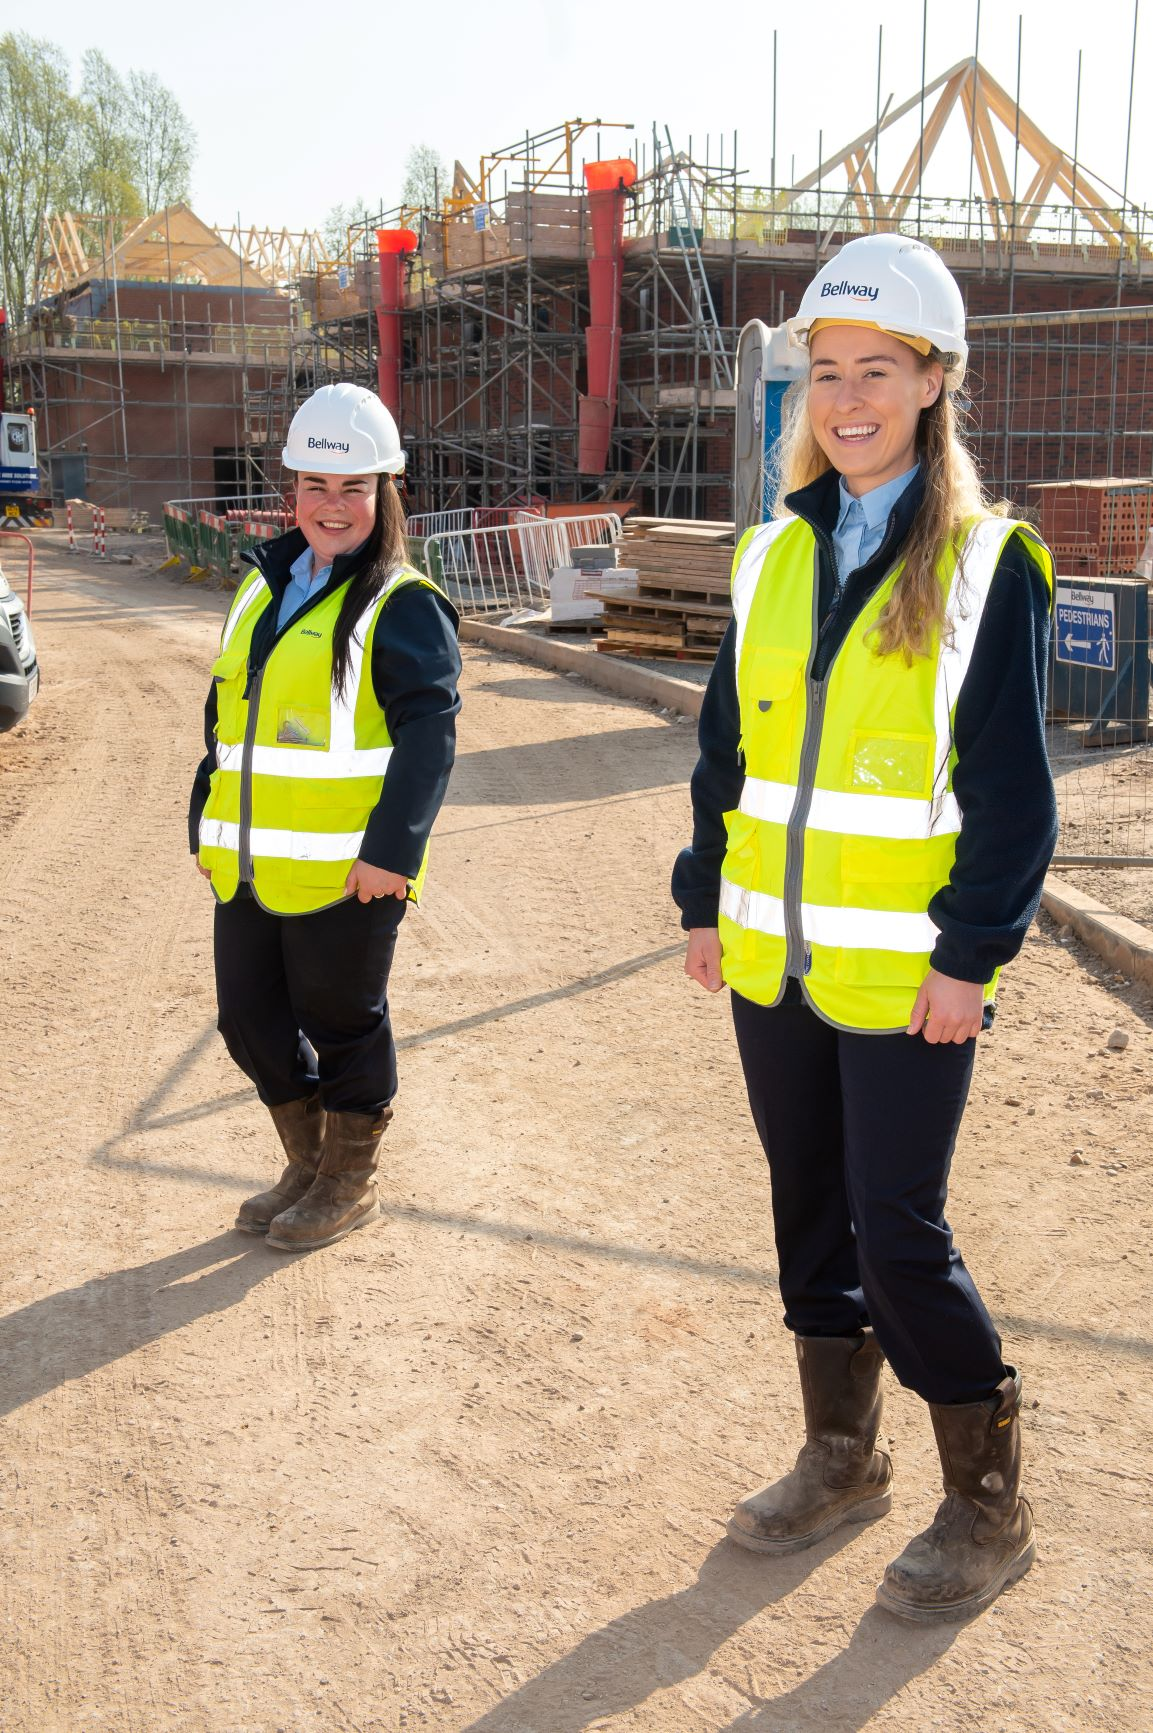 Bellway leads way for women in construction with new appointments